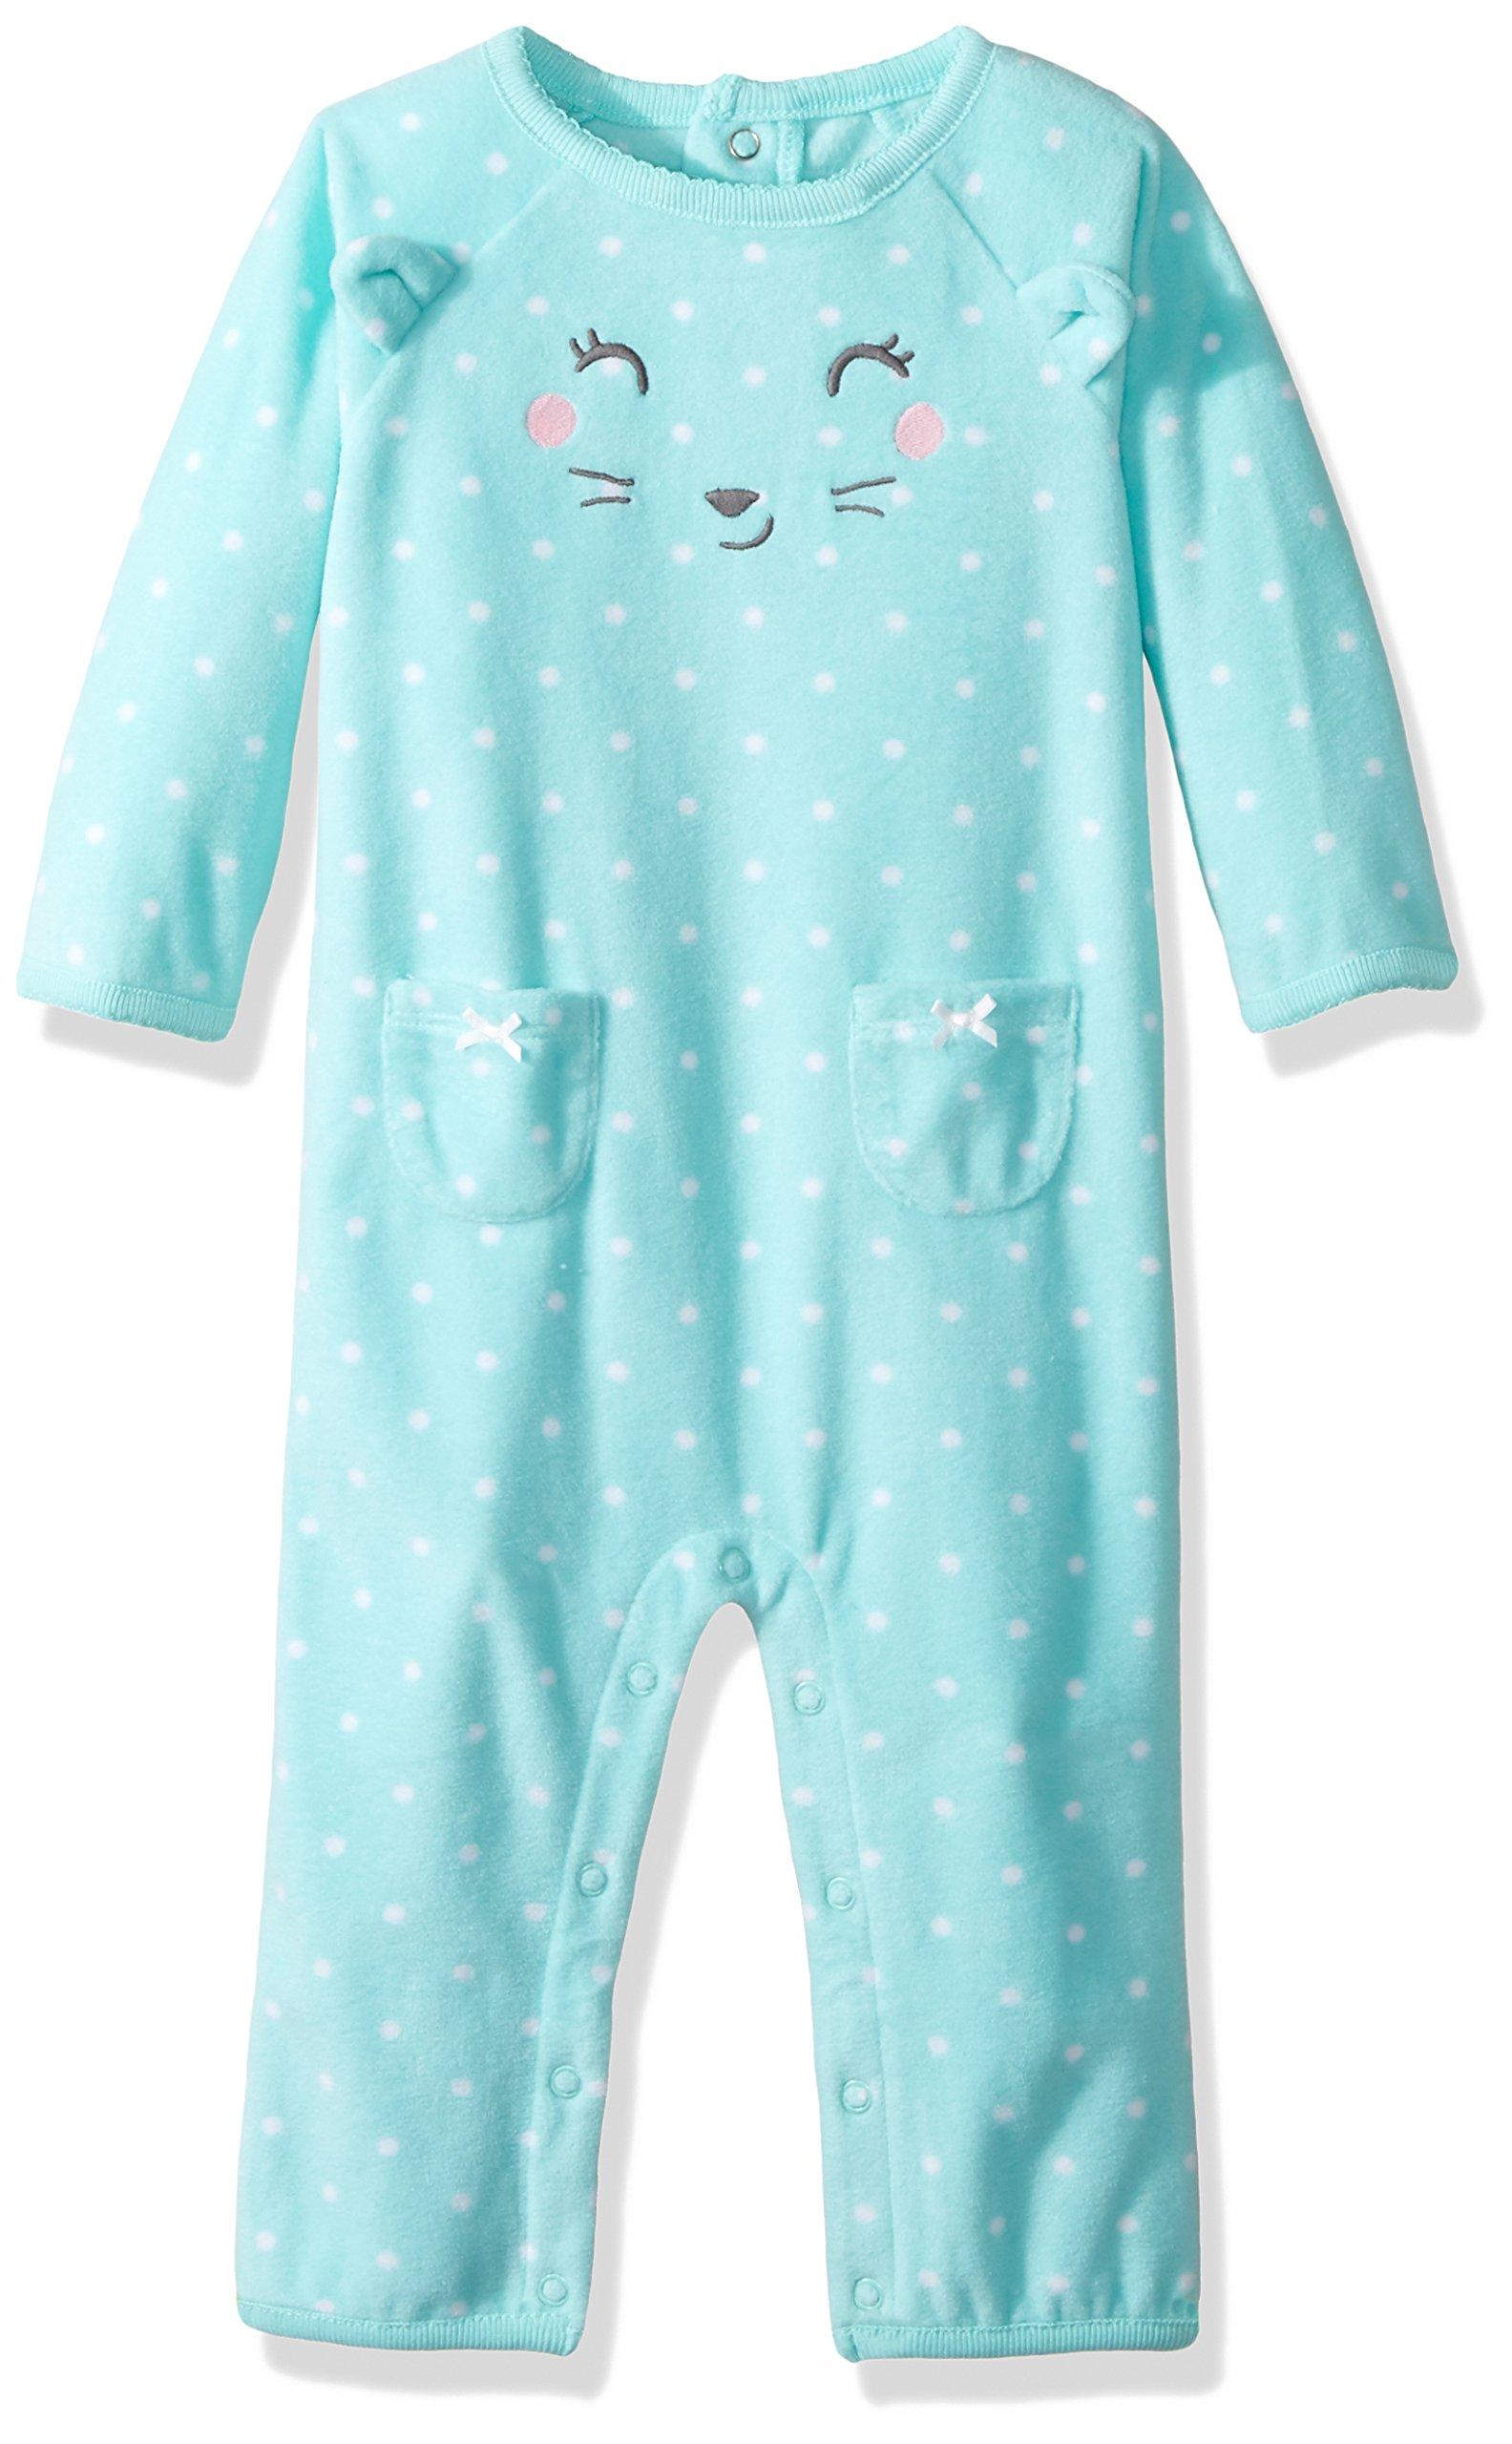 5effb5a3d Best Rated in Baby Girls' Novelty One-Piece Rompers & Helpful ...